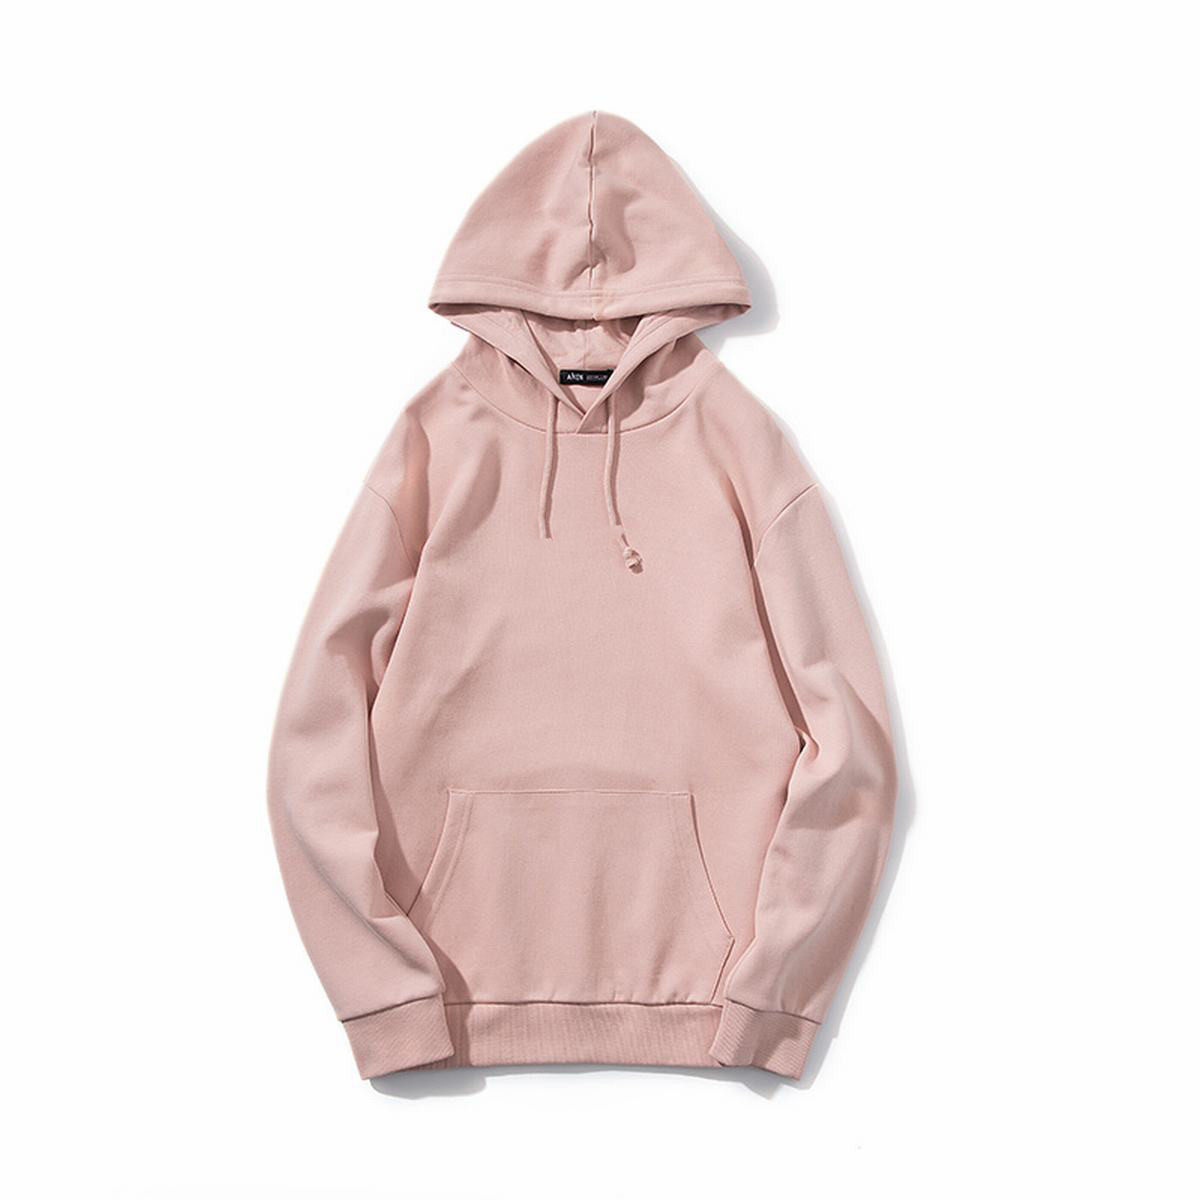 Spring  breathable light french terry custom design anf colors men Hoodies